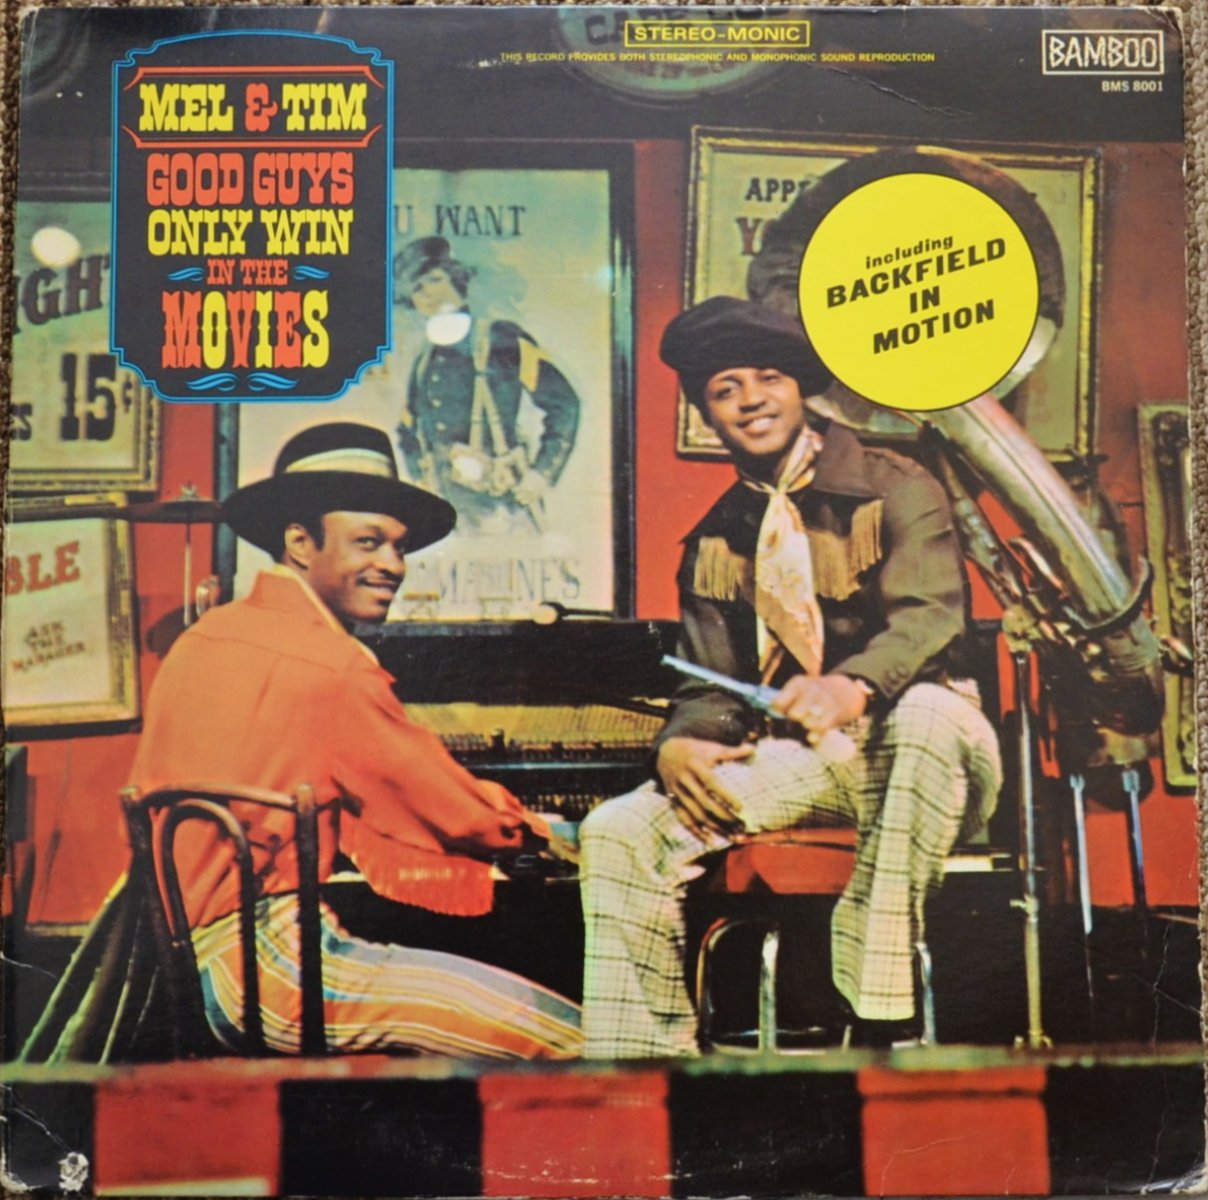 MEL & TIM / GOOD GUYS ONLY WIN IN THE MOVIES (LP)